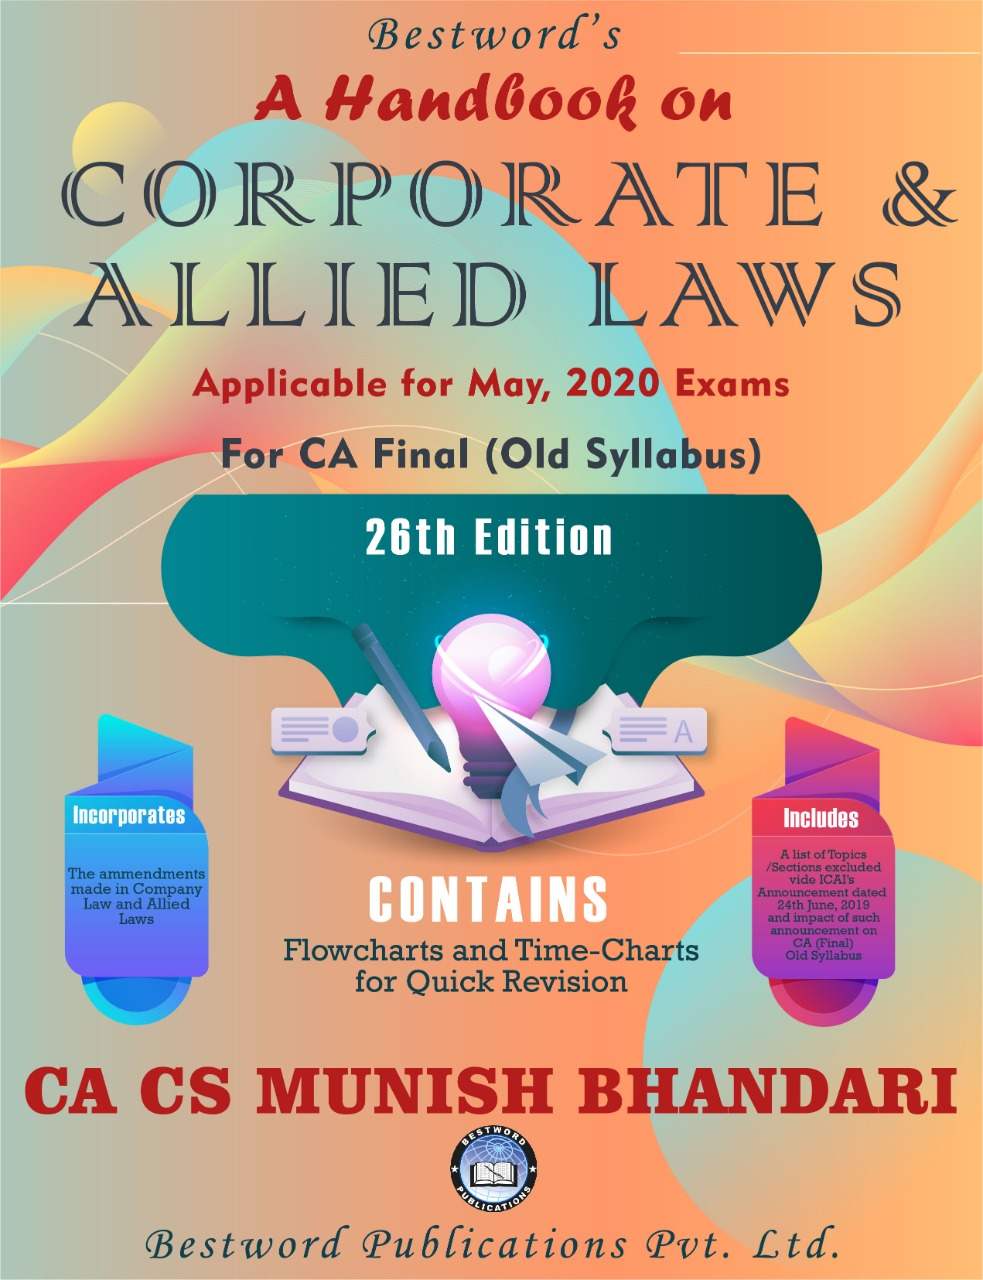 Bestword A Handbook on Corporate and Allied Laws CA Final Old Syllabus By Munish Bhandari Applicable for May 2020 Exam